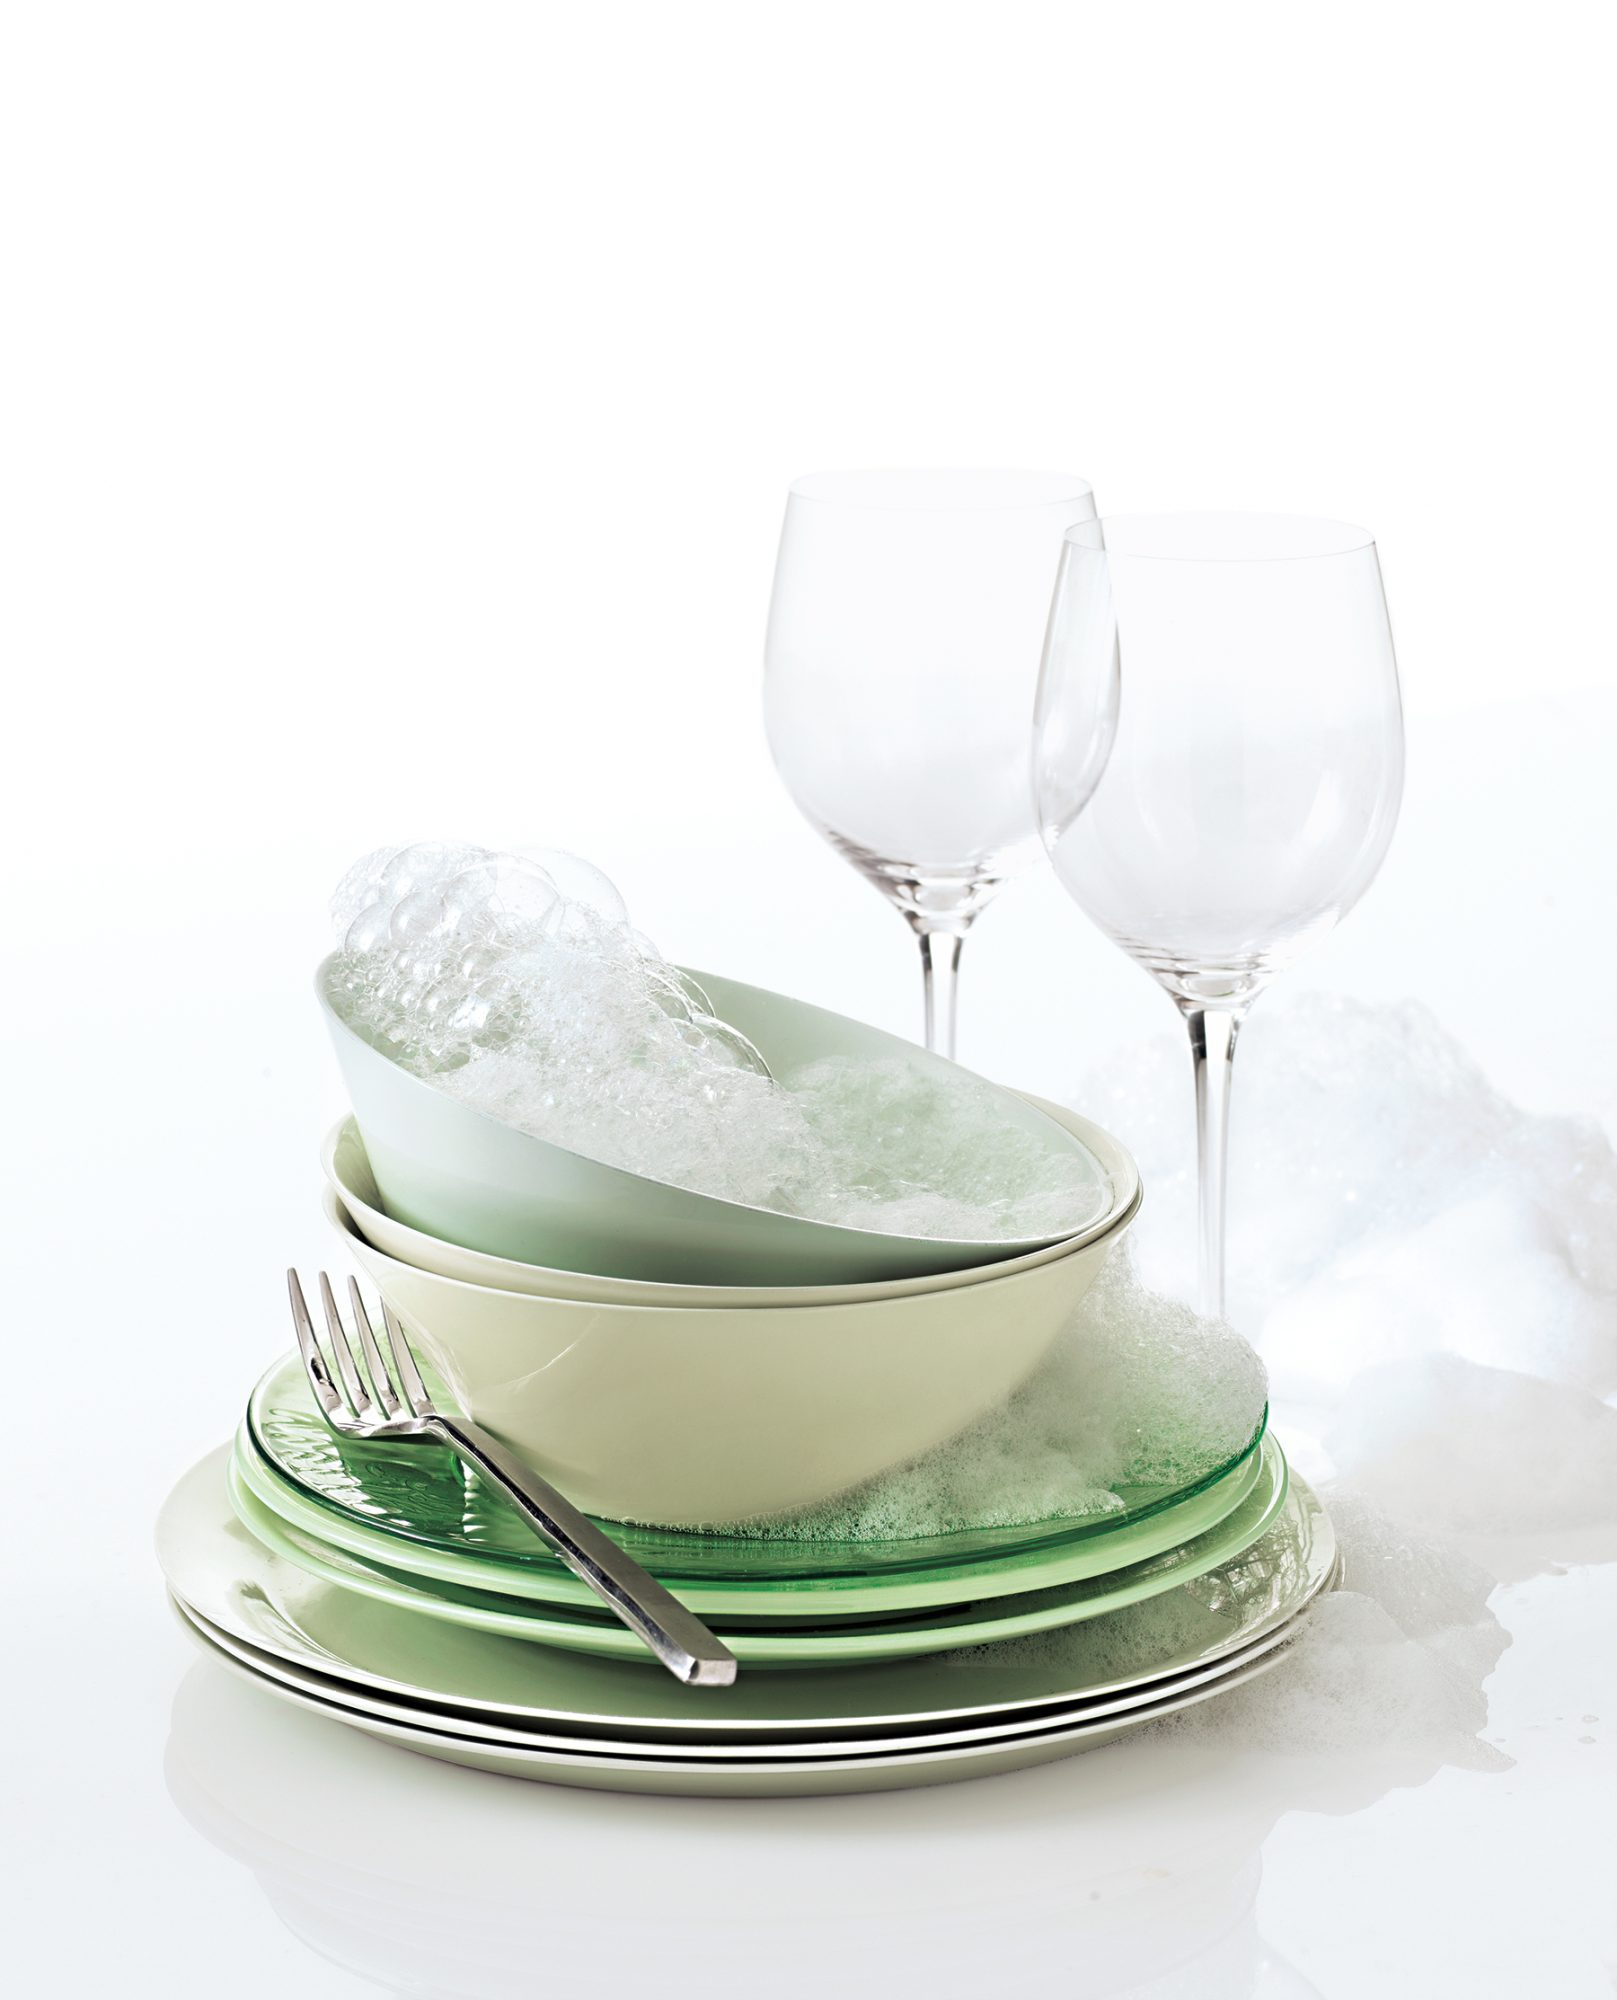 Dishes with soapy water